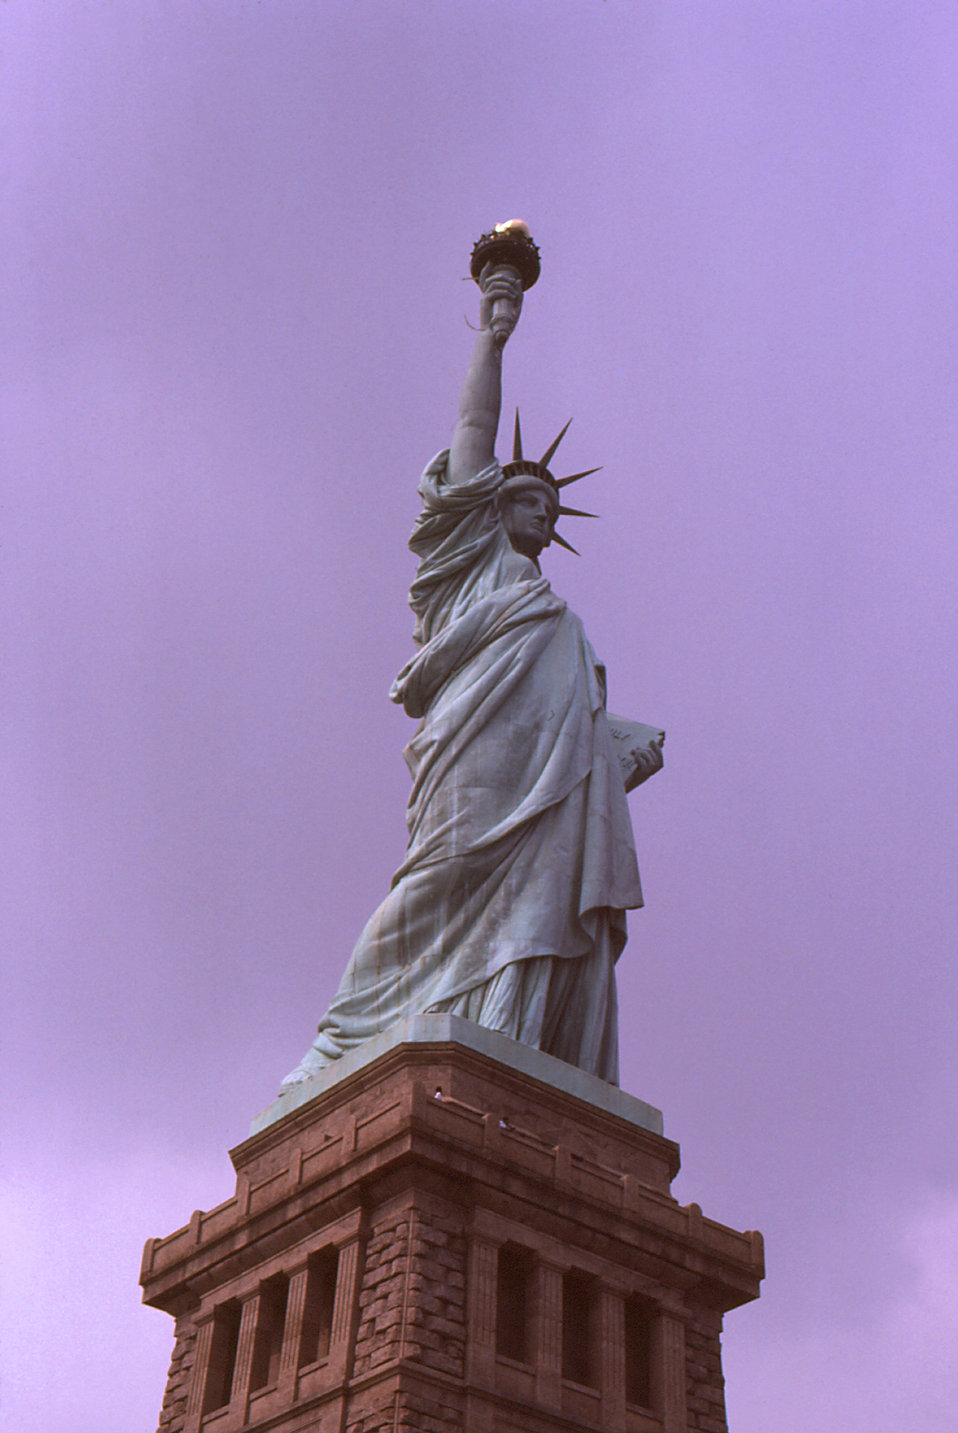 This photograph depicted the Statue of Liberty, the centerpiece of the Statue of Liberty National Monument. The statue was a gift to the peo